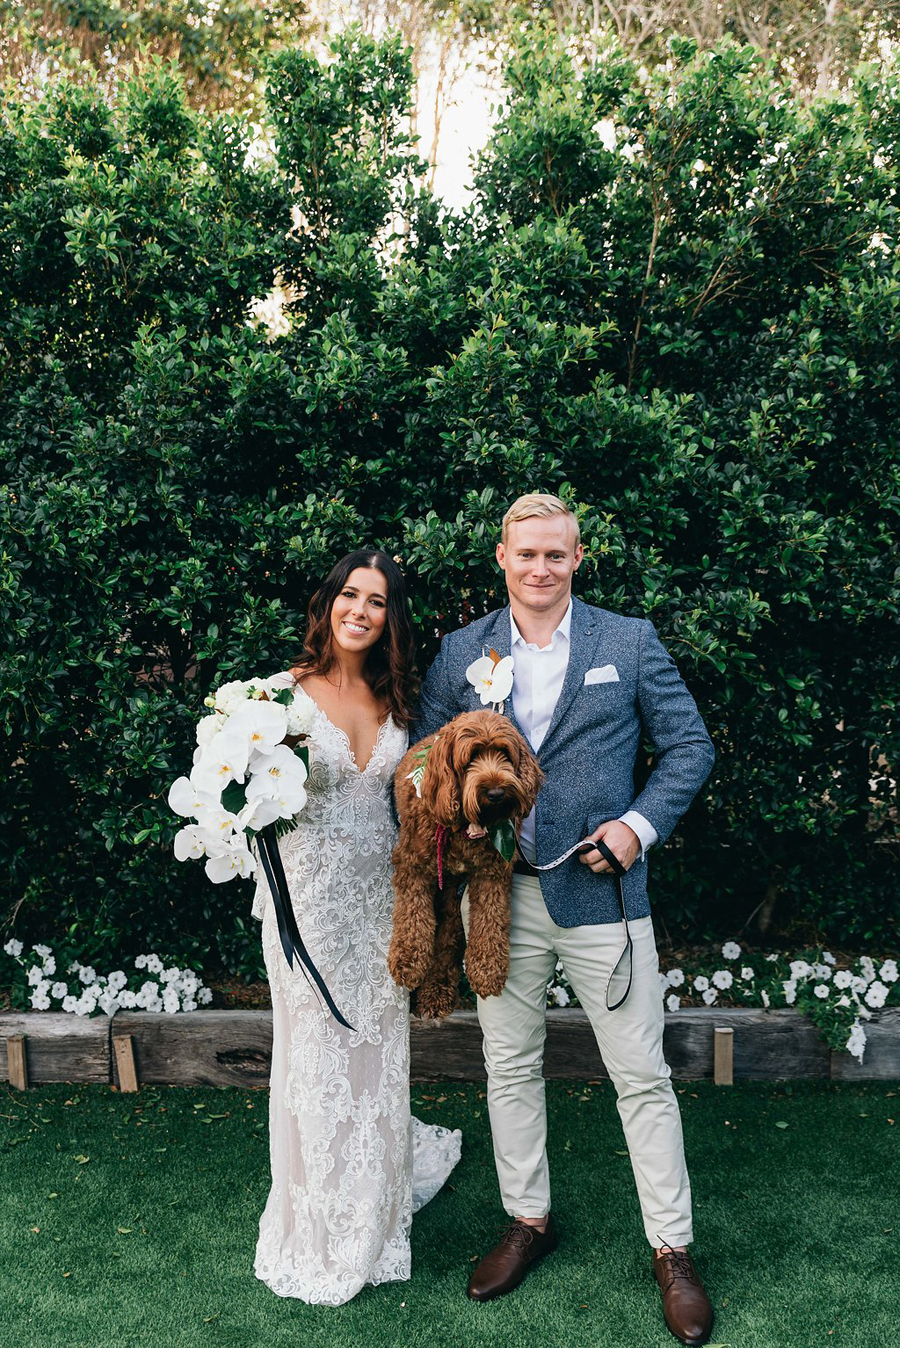 tweed-coast-weddings-wedding-venue-osteria-casuarina-garden-ceremony-reception-coastal-elyse-peter031.jpg